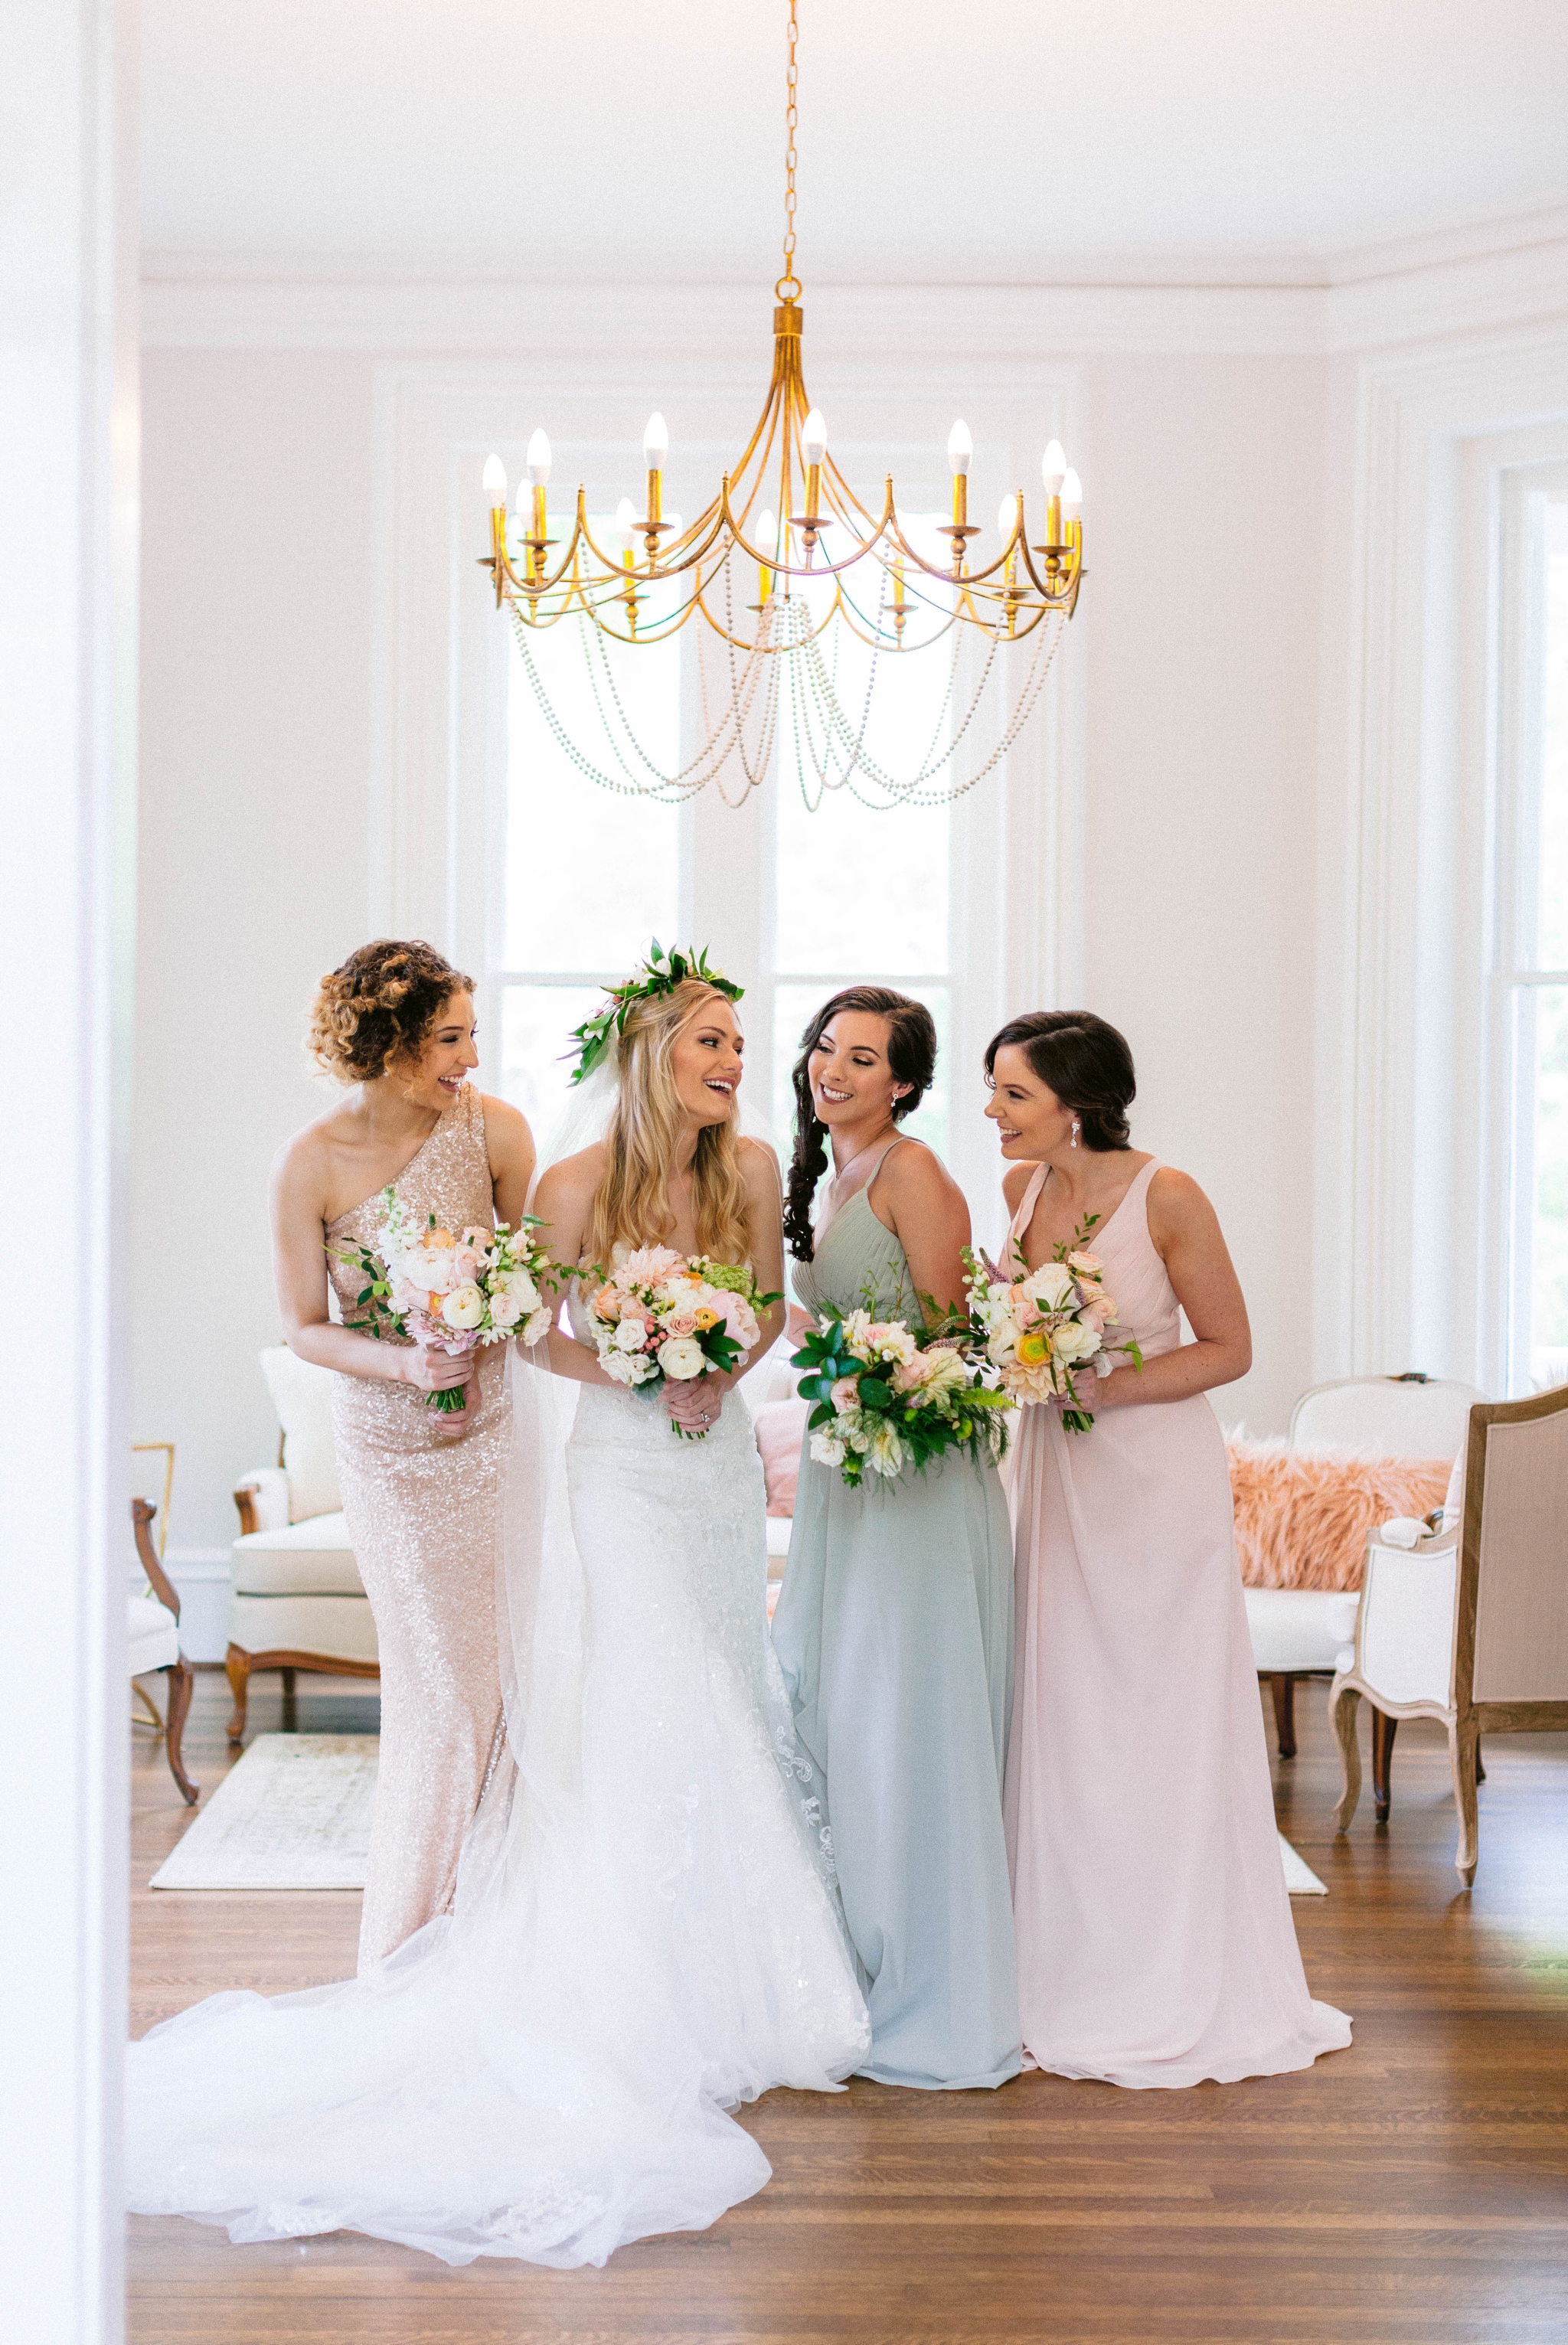 Indoor Bride + bridesmaids portraits in an all white room at a luxury estate with natural light before the ceremony - Bride is wearing a Hawaiian Flower Crown and a cathedral veil in a Wedding Gown by Stella York - Honolulu Oahu Hawaii Wedding Photographer - Johanna Dye Photography